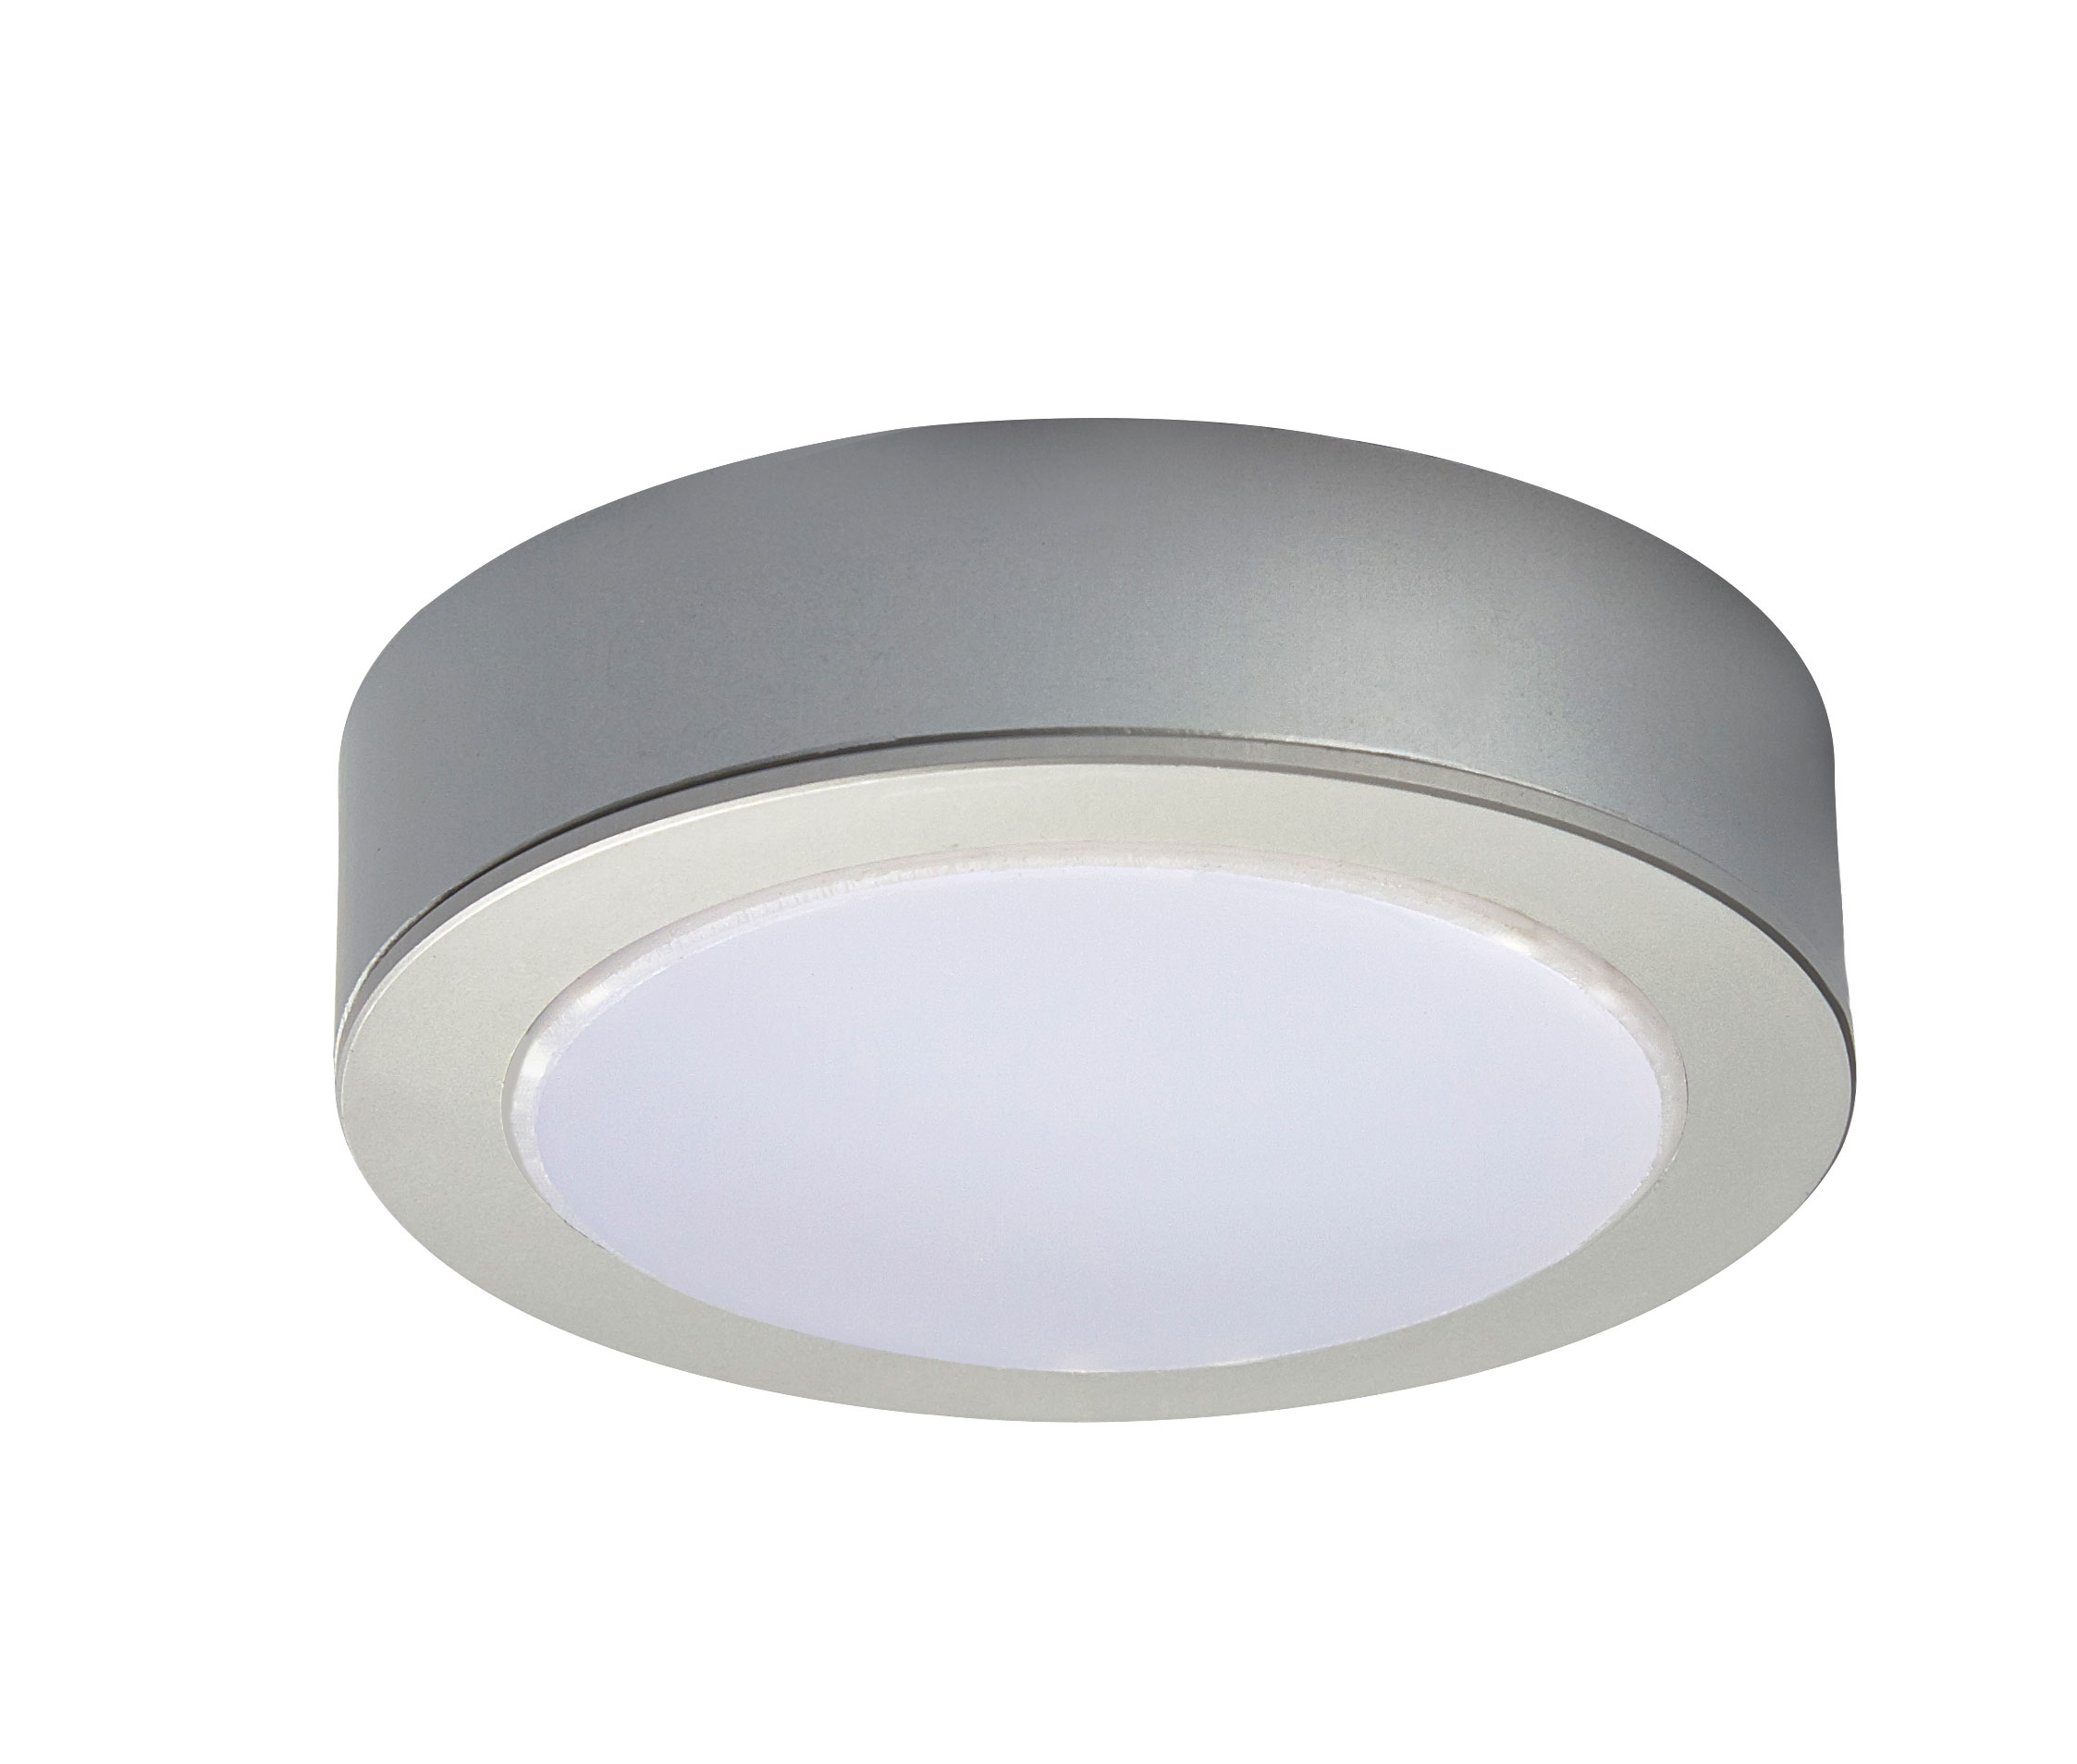 Sensio SLS Under Cabinet Light with surface mounting spacer.